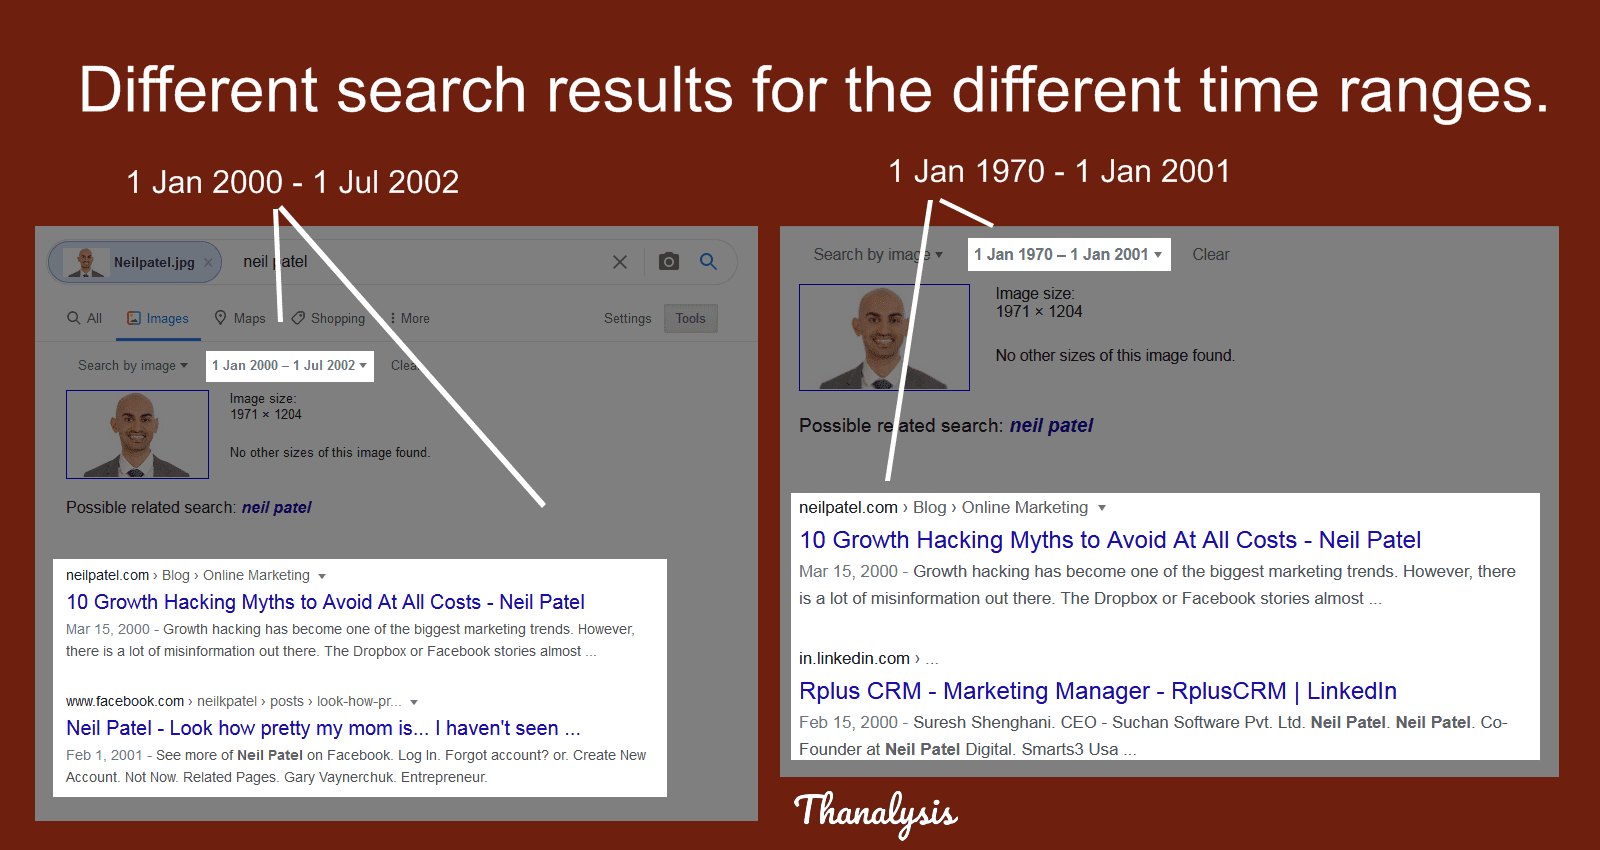 Different search results for the different time ranges. Google has not shown the results although it was published on the date which falls under the selected time range for filtering the image search results.